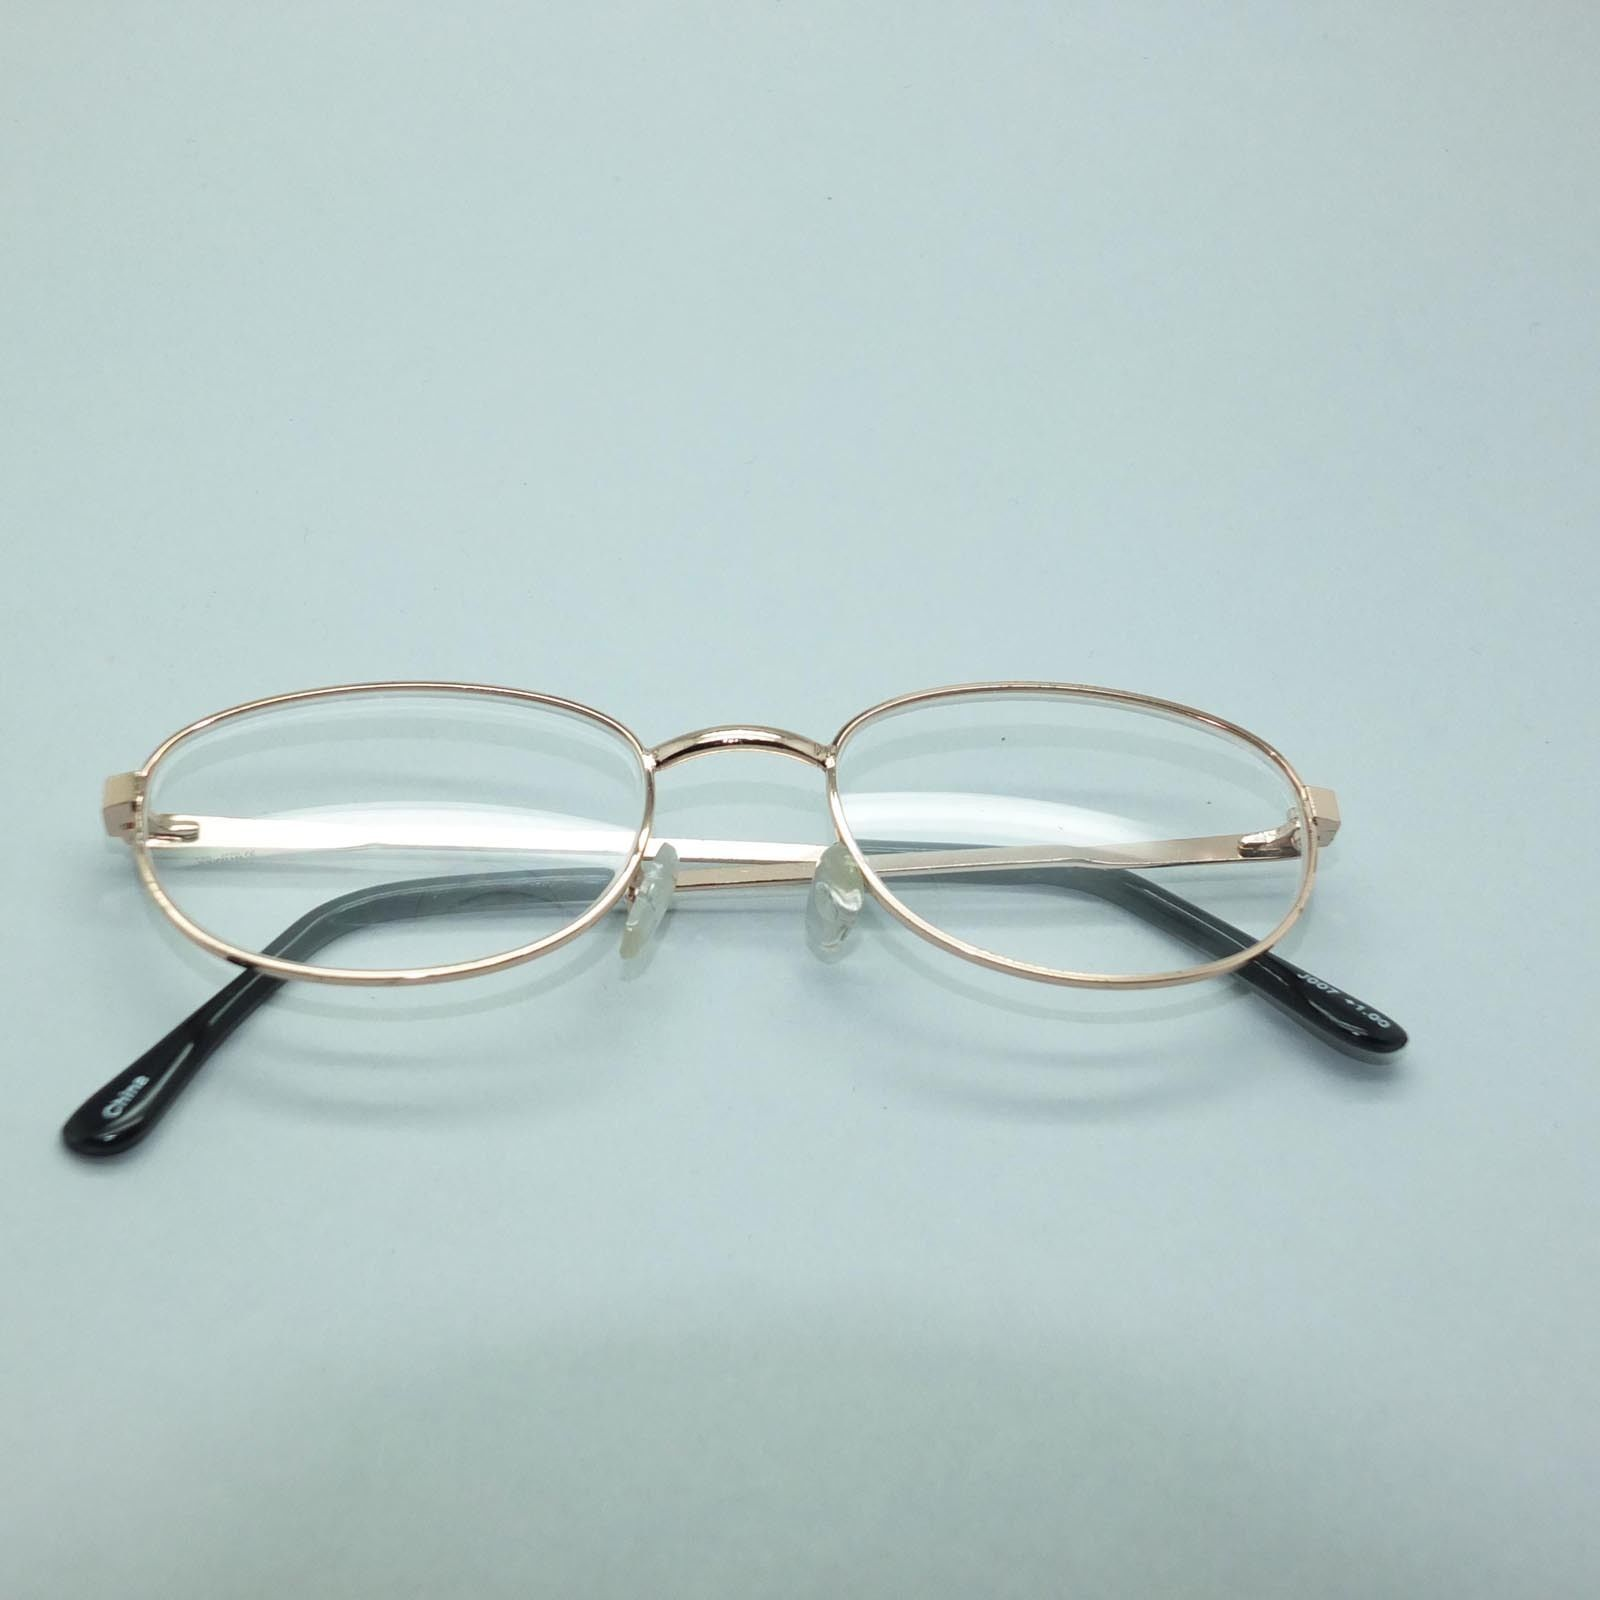 Gold Frame Reading Glasses : Simple Peepers Metal Gold Small Frame Reading Glasses +1 ...